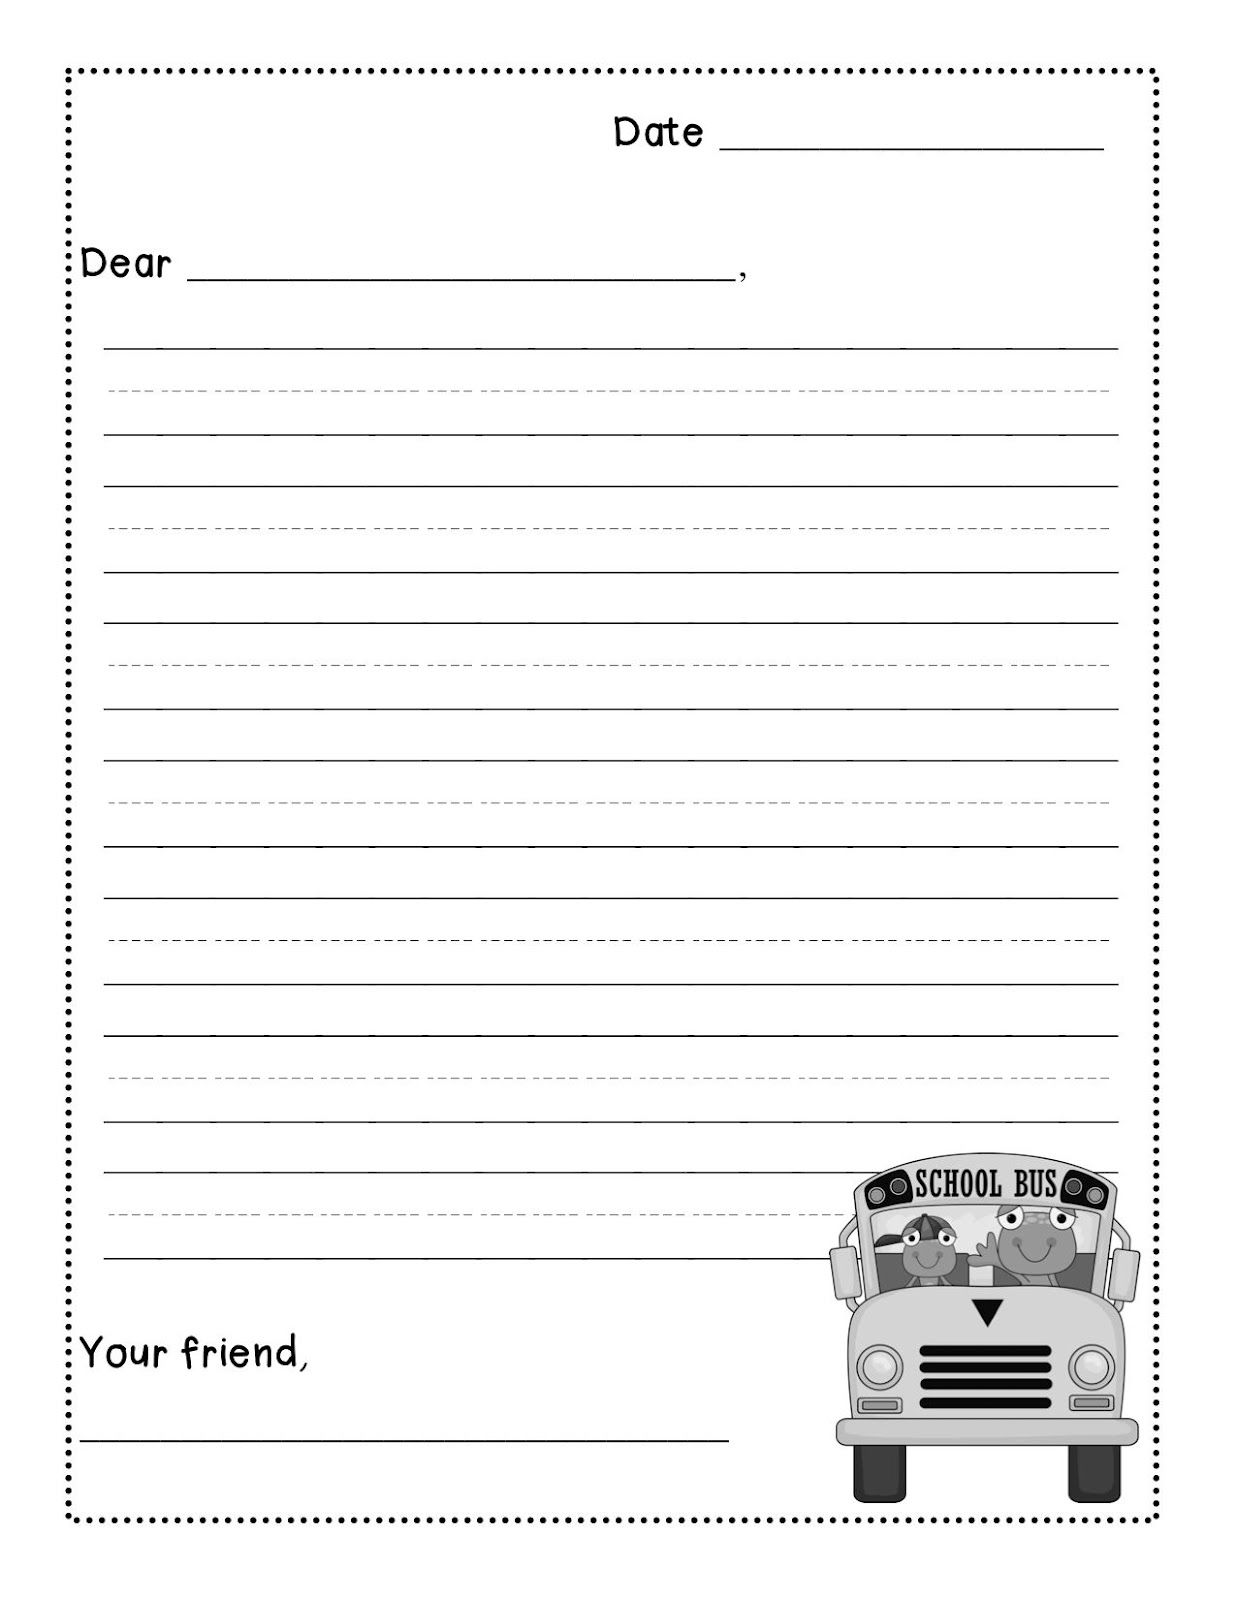 Friendly letter writing freebie levelized templates up for grabs friendly letter writing freebie levelized templates up for grabs letter writing templatewriting expocarfo